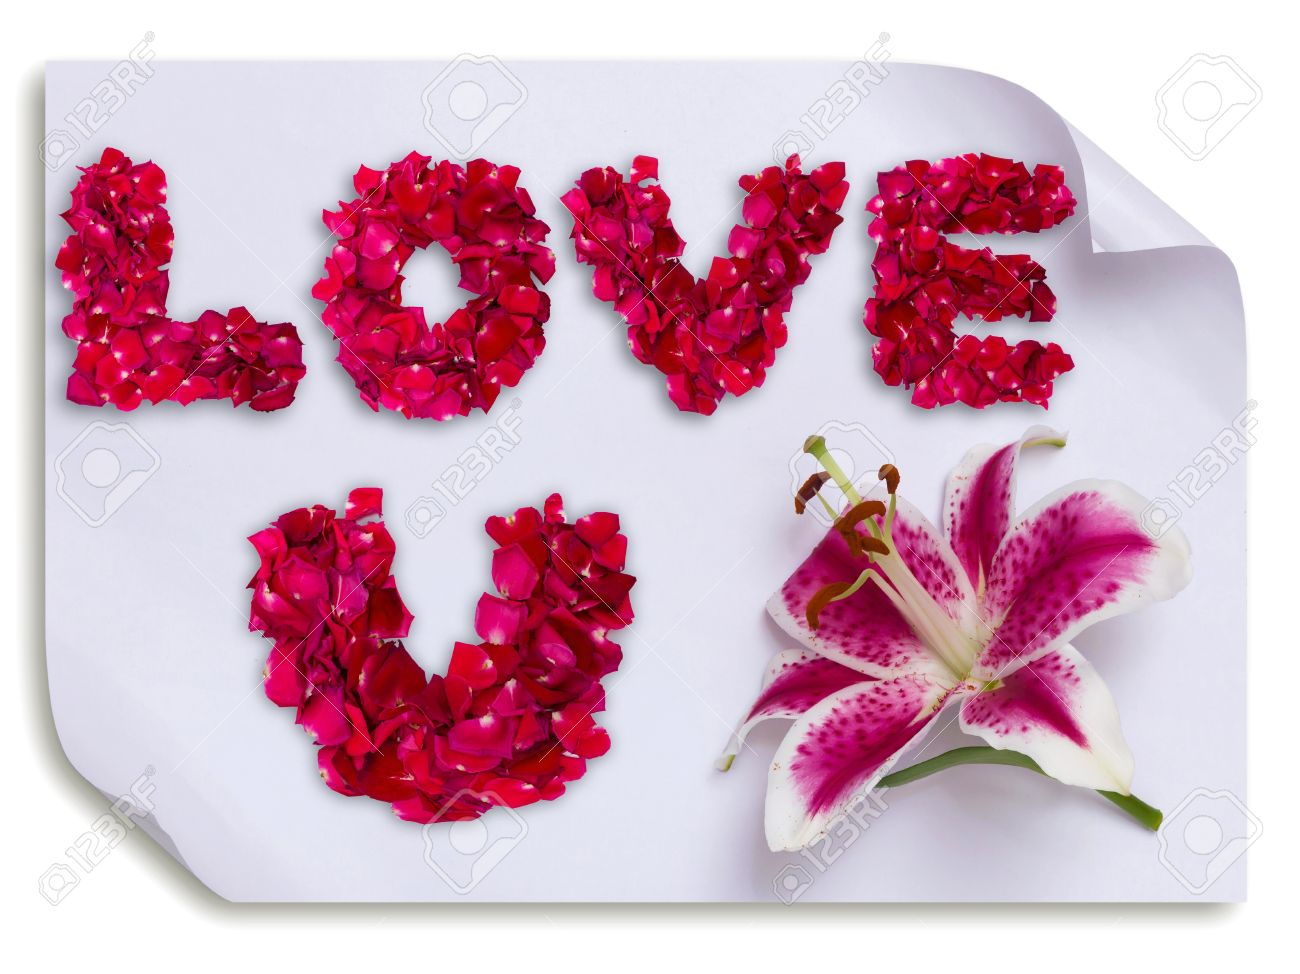 Love You Word Made From Red Rose Petals And Lily Flower On Paper